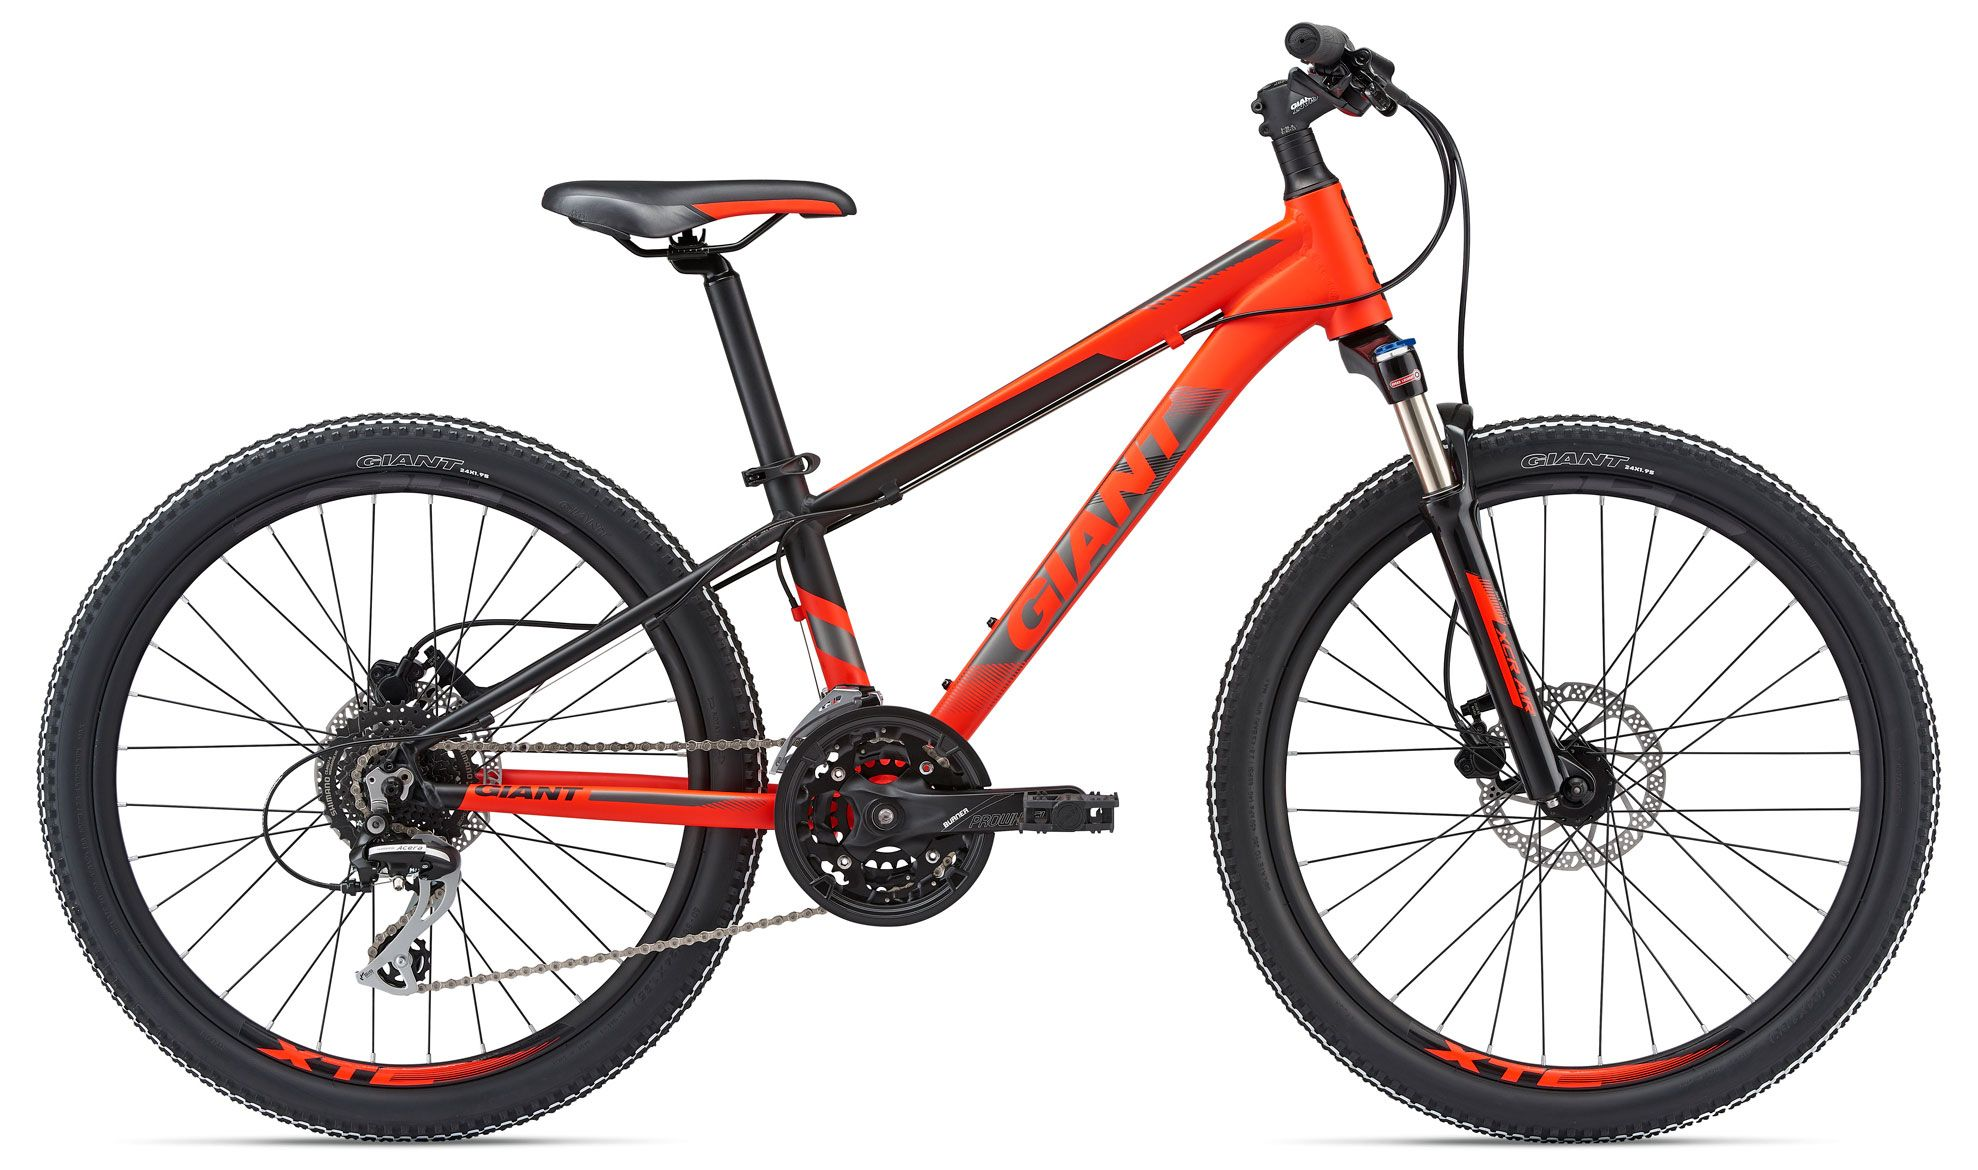 Велосипед Giant XtC SL Jr 24 2018 велосипед giant xtc composite 1 2013